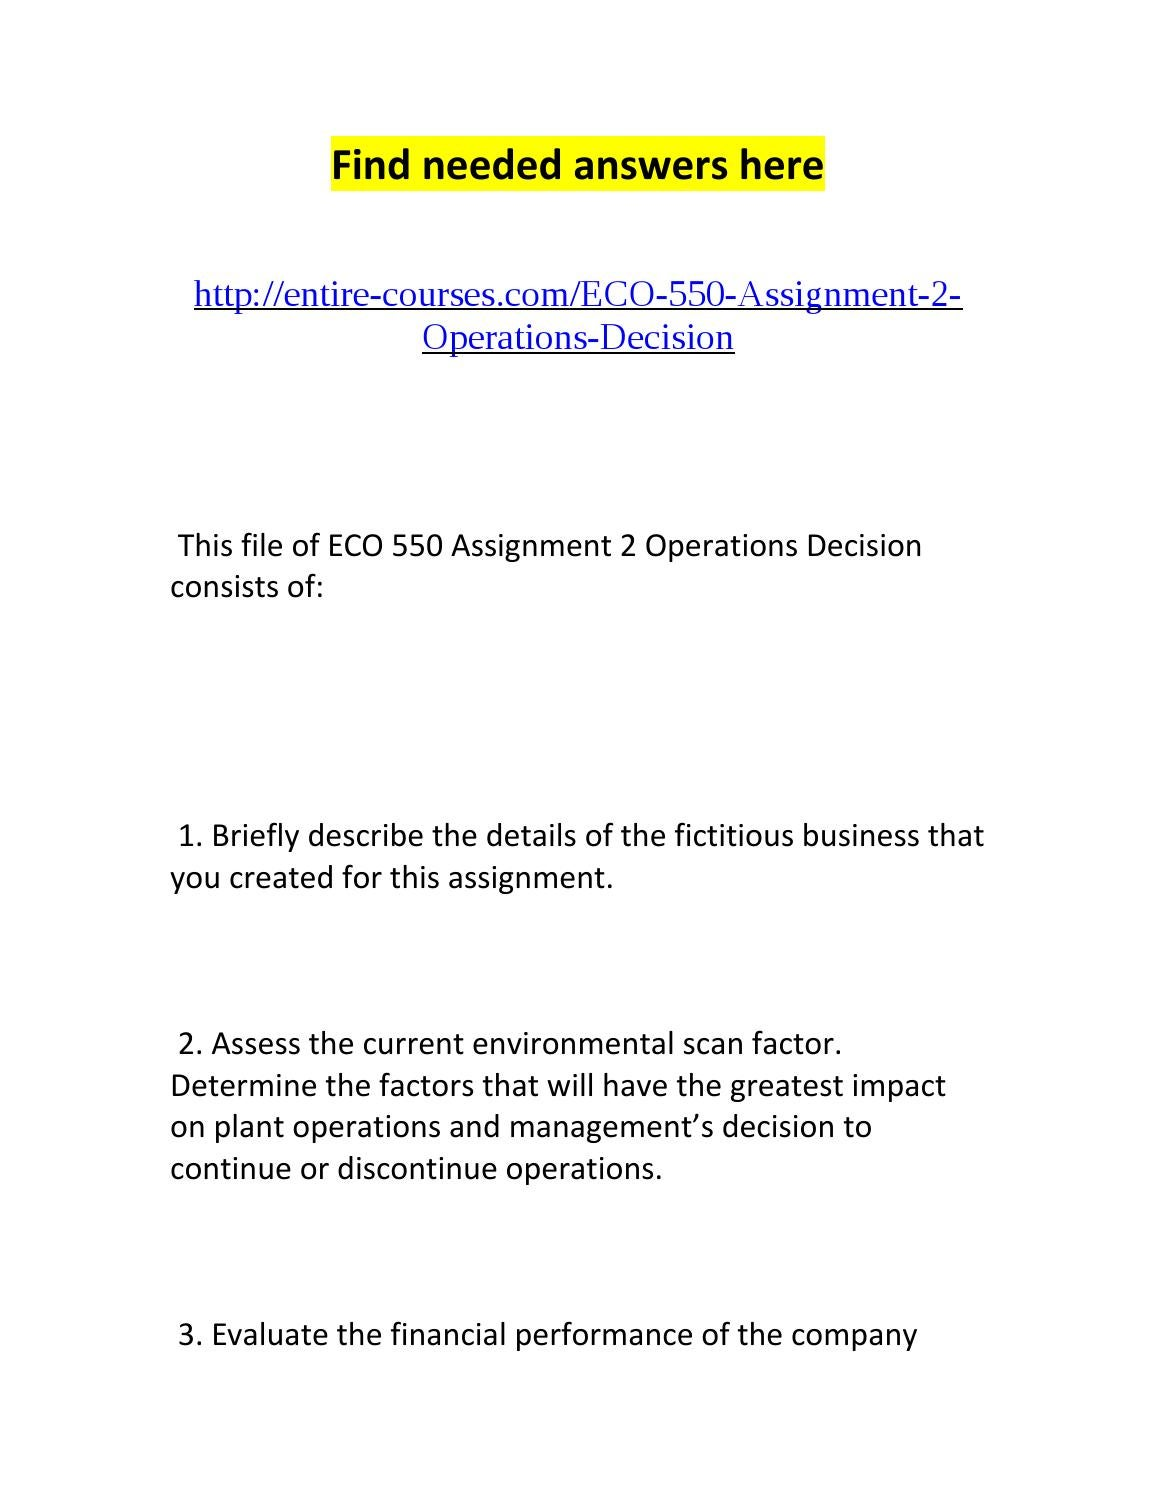 Eco-550 Assignment 2 Operations Decision